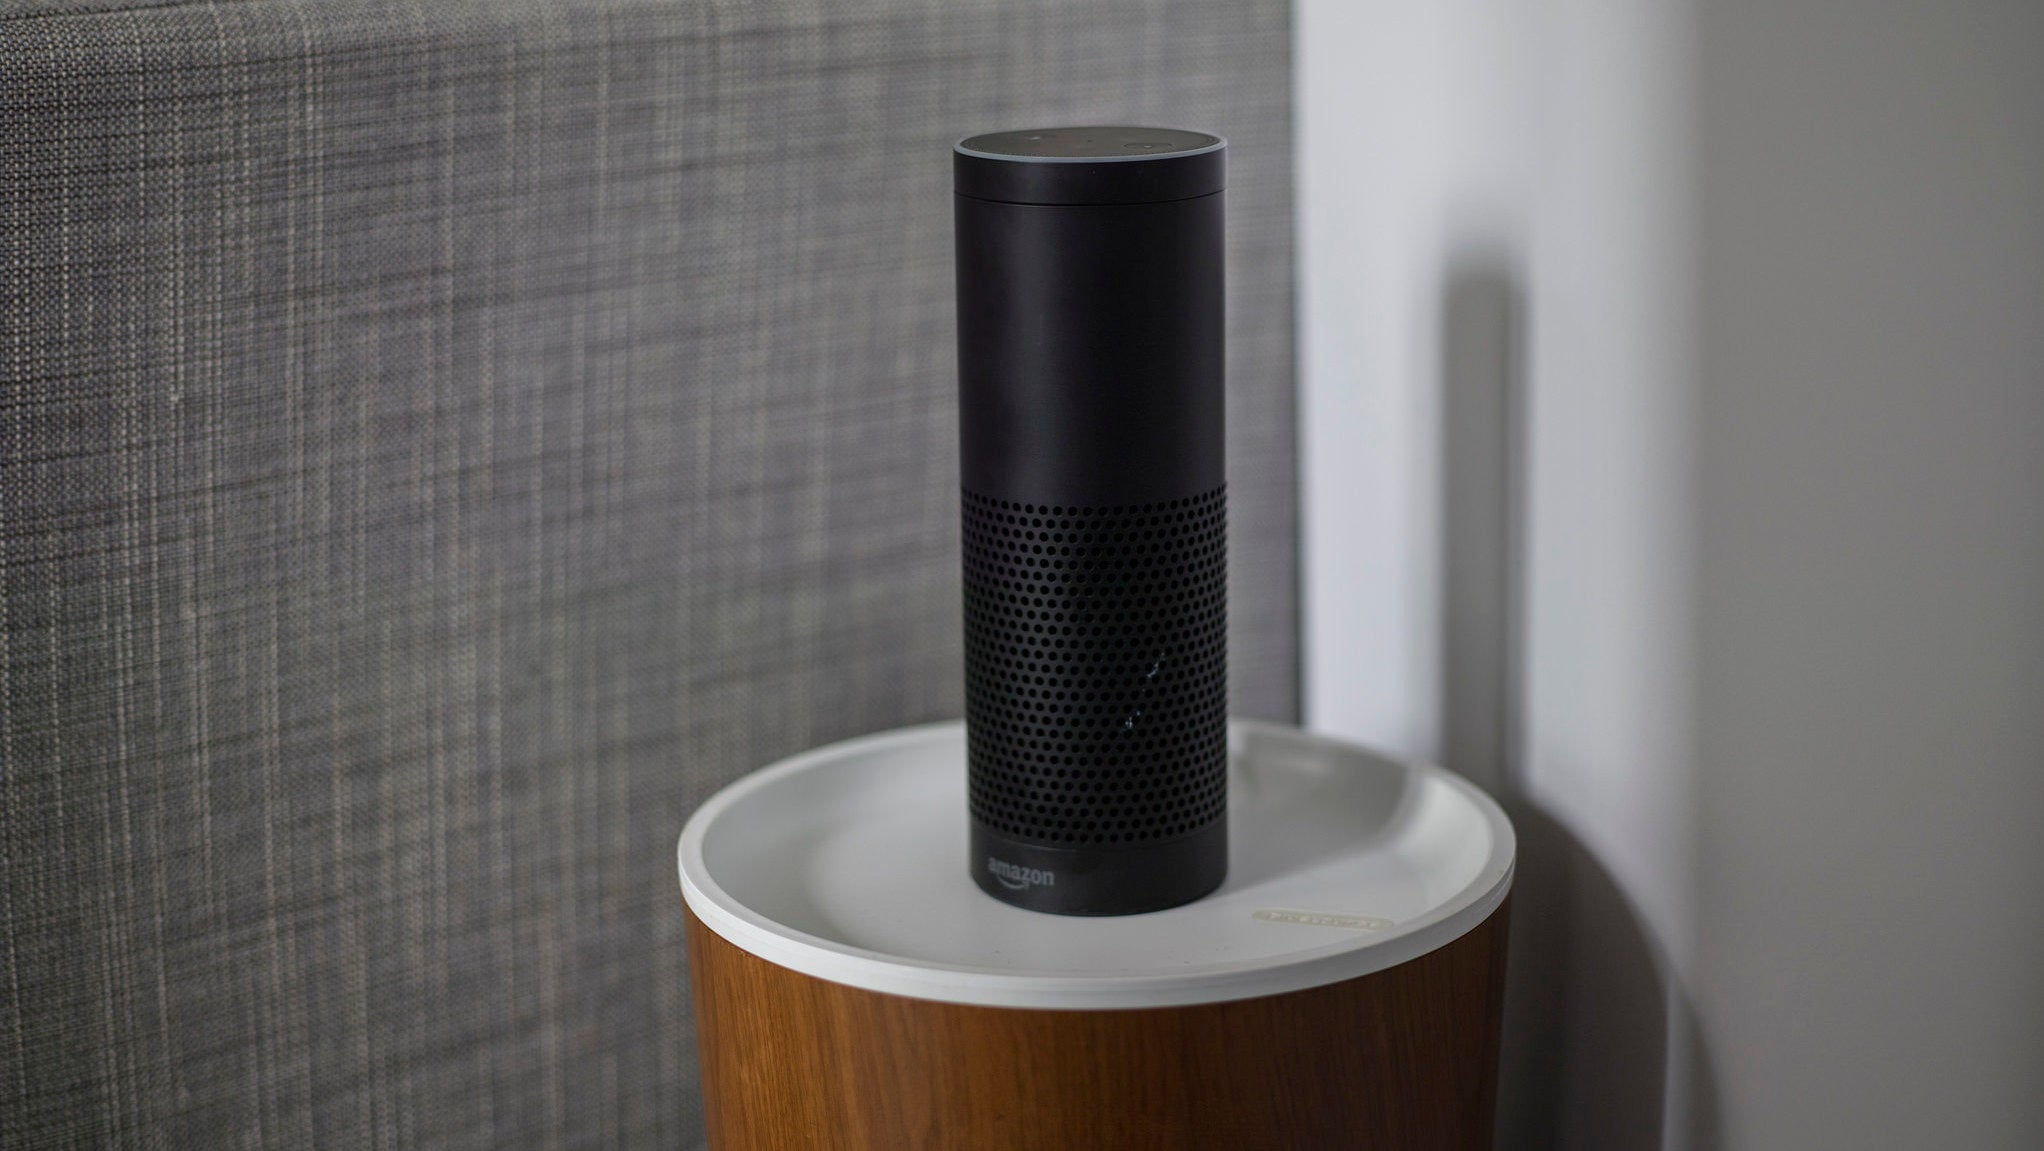 How To Get Alexa To Read Your Emails, And Tell You If 'That' Message Has Arrived